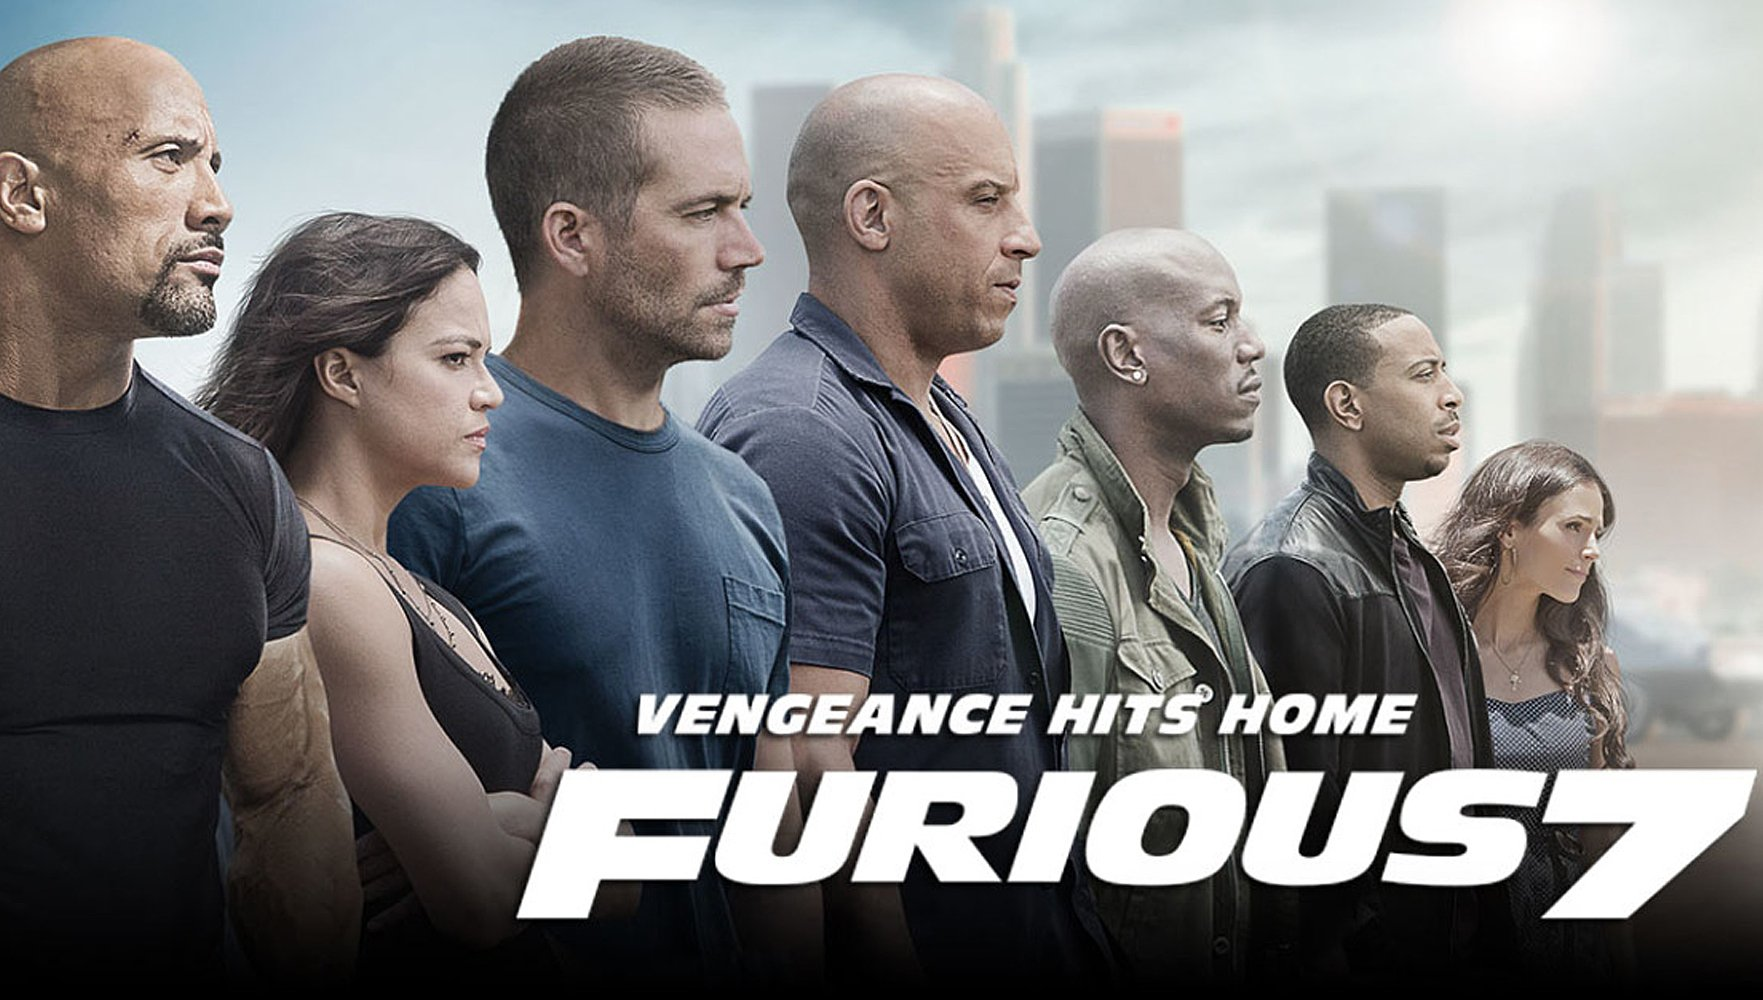 Furious 7 - Critique du film de James Wan